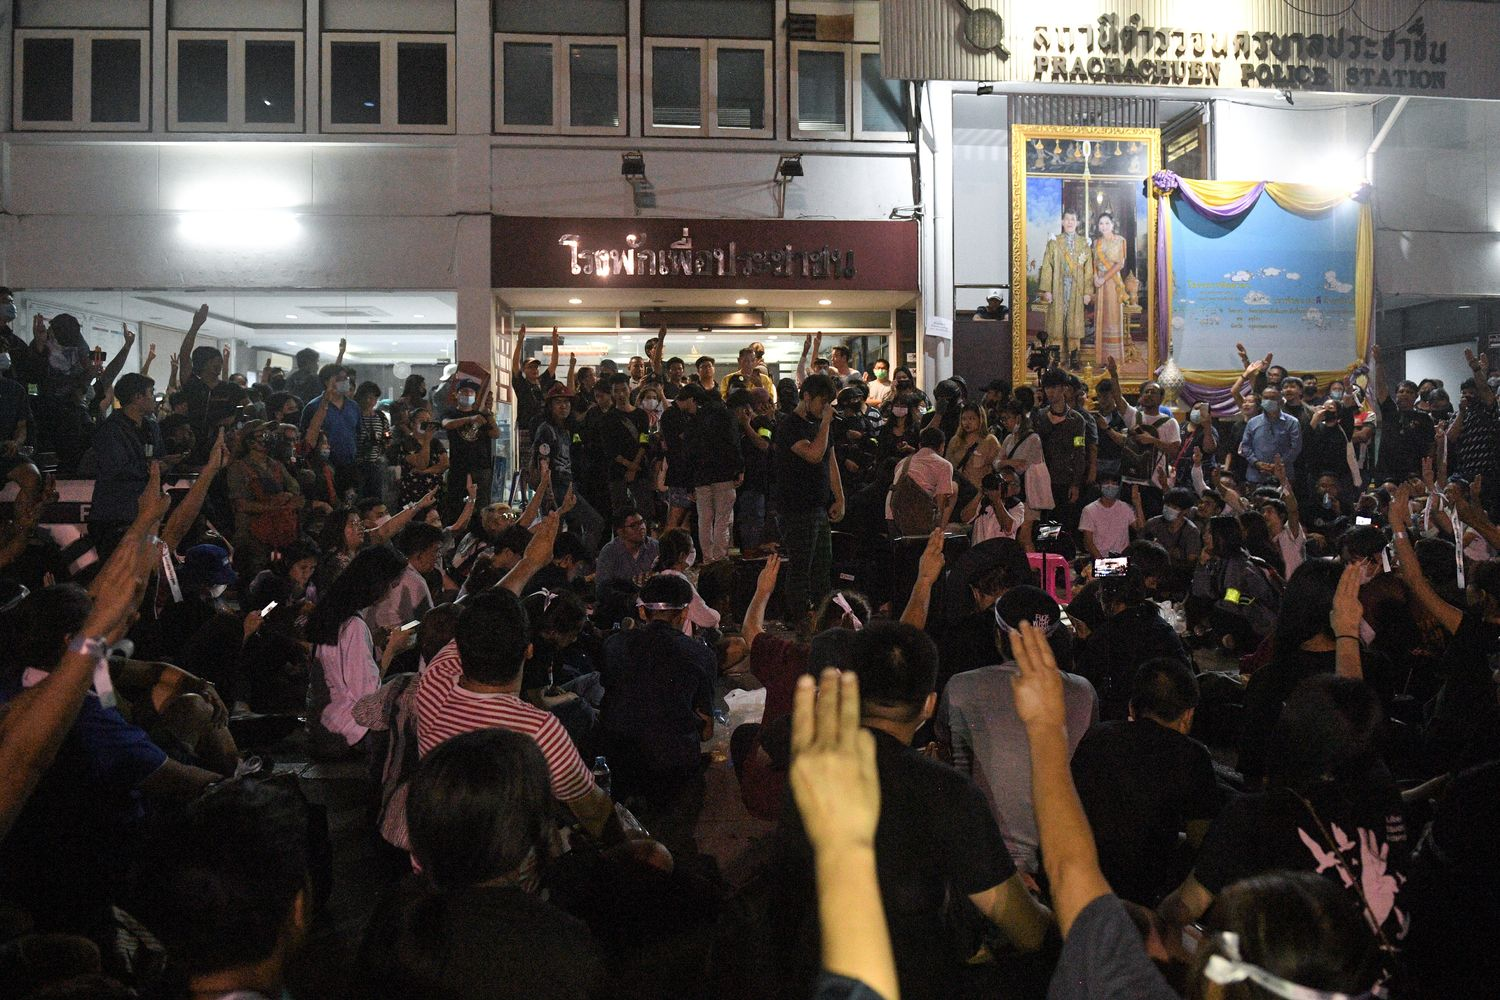 Demonstrators flash the three-finger salute as they gather outside the Pracha Chuen police station in Bangkok on Friday night. (Reuters photo)